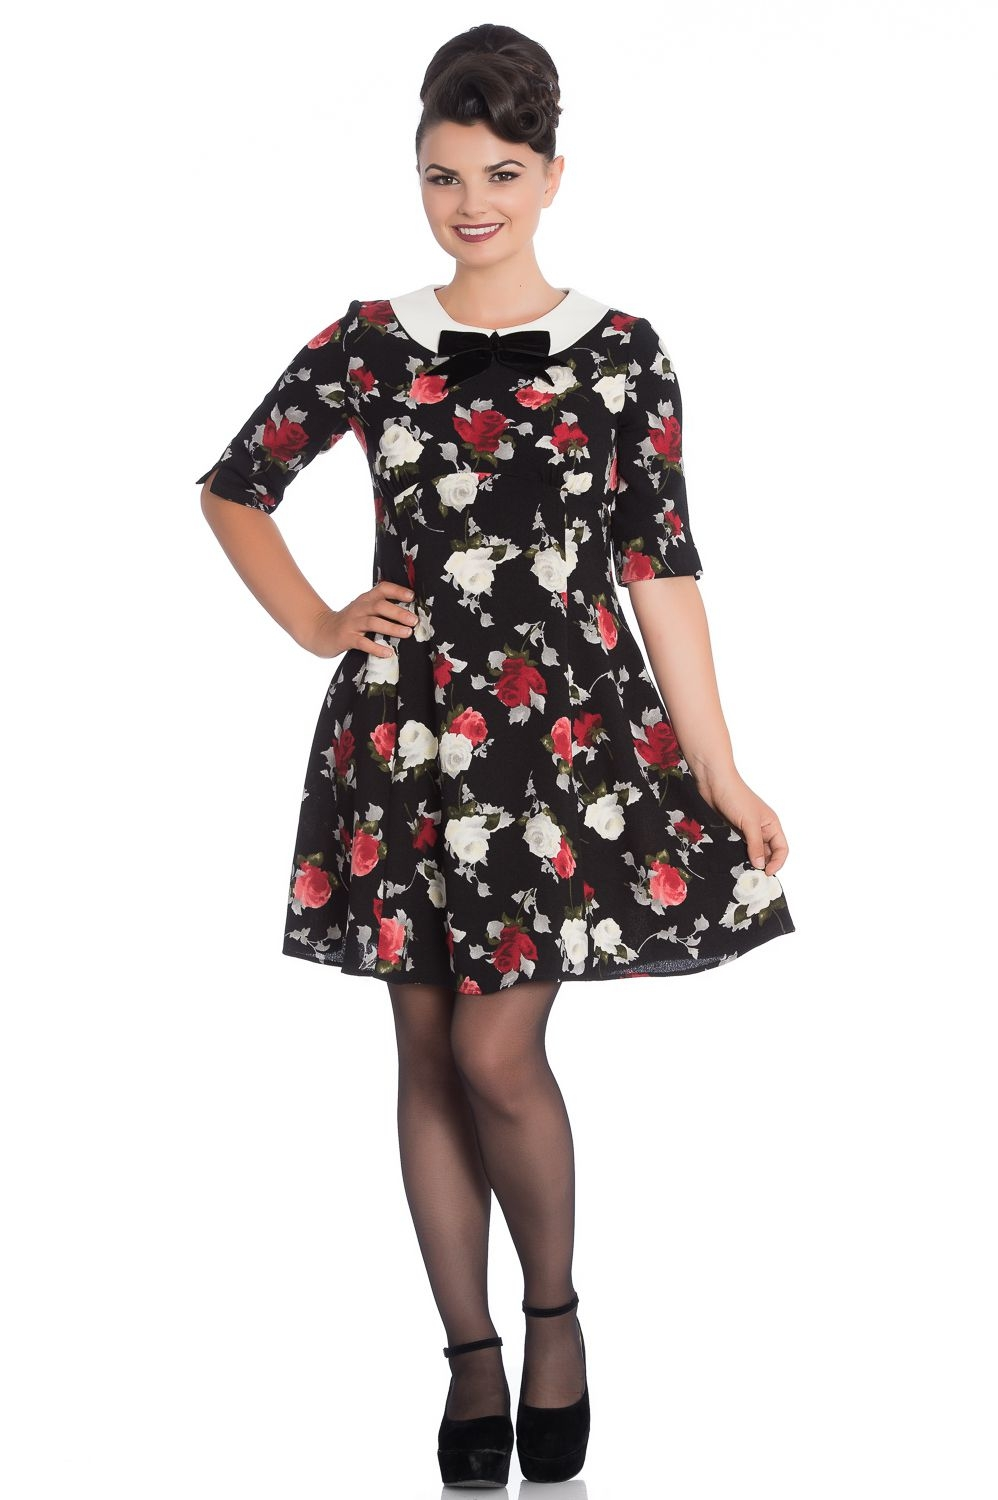 ps4748_mini-robe-pin-up-rockabilly-50-s-retro-glamour-selma